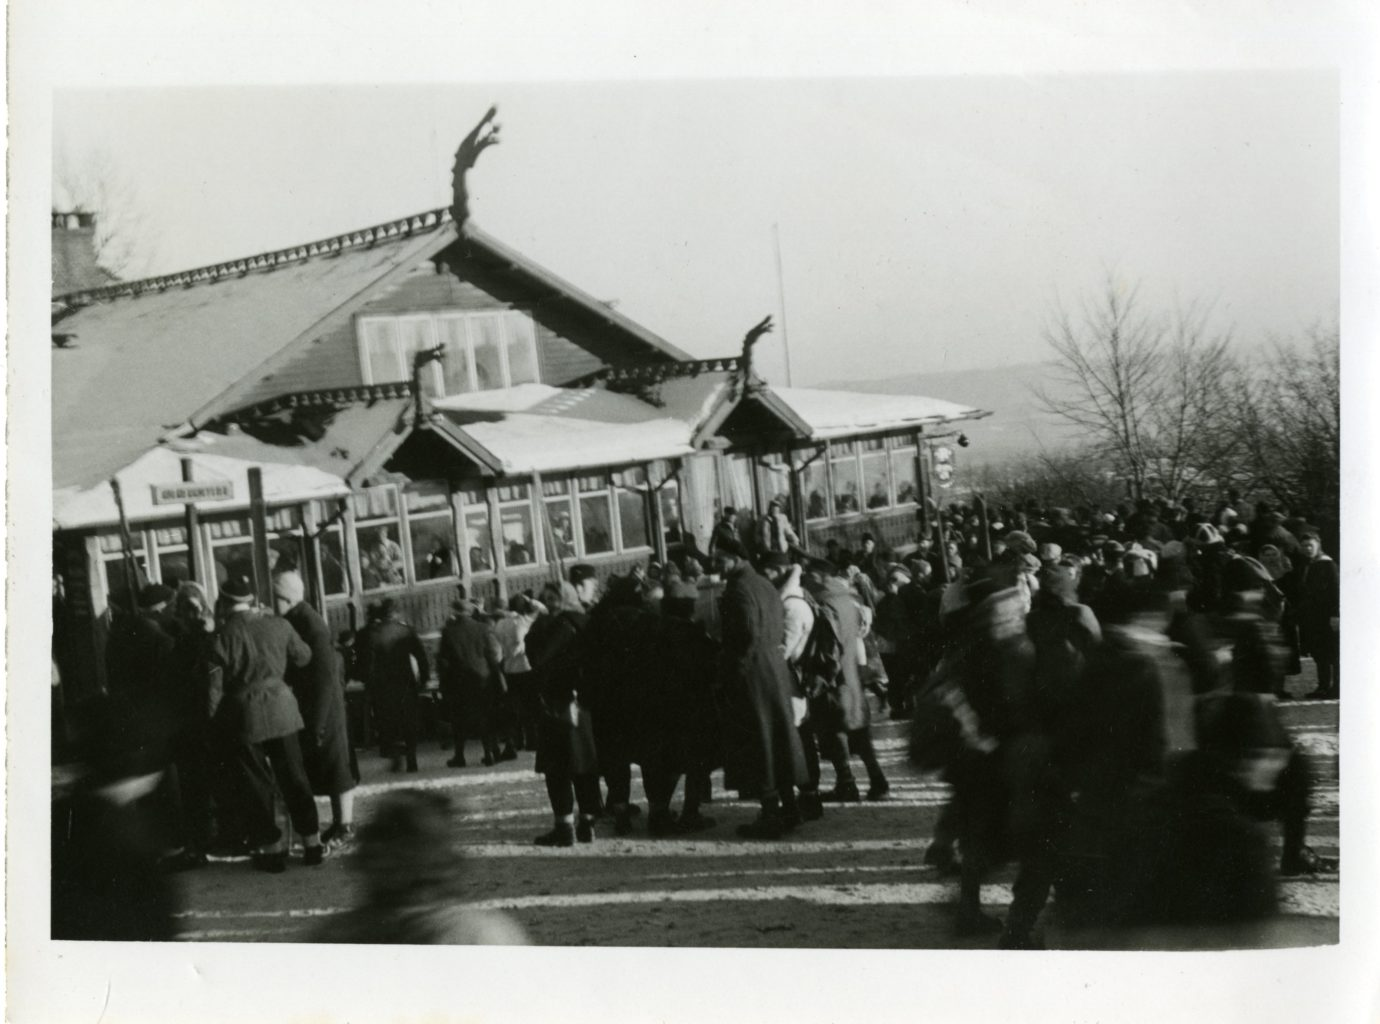 A large crowd gathers outside of building.